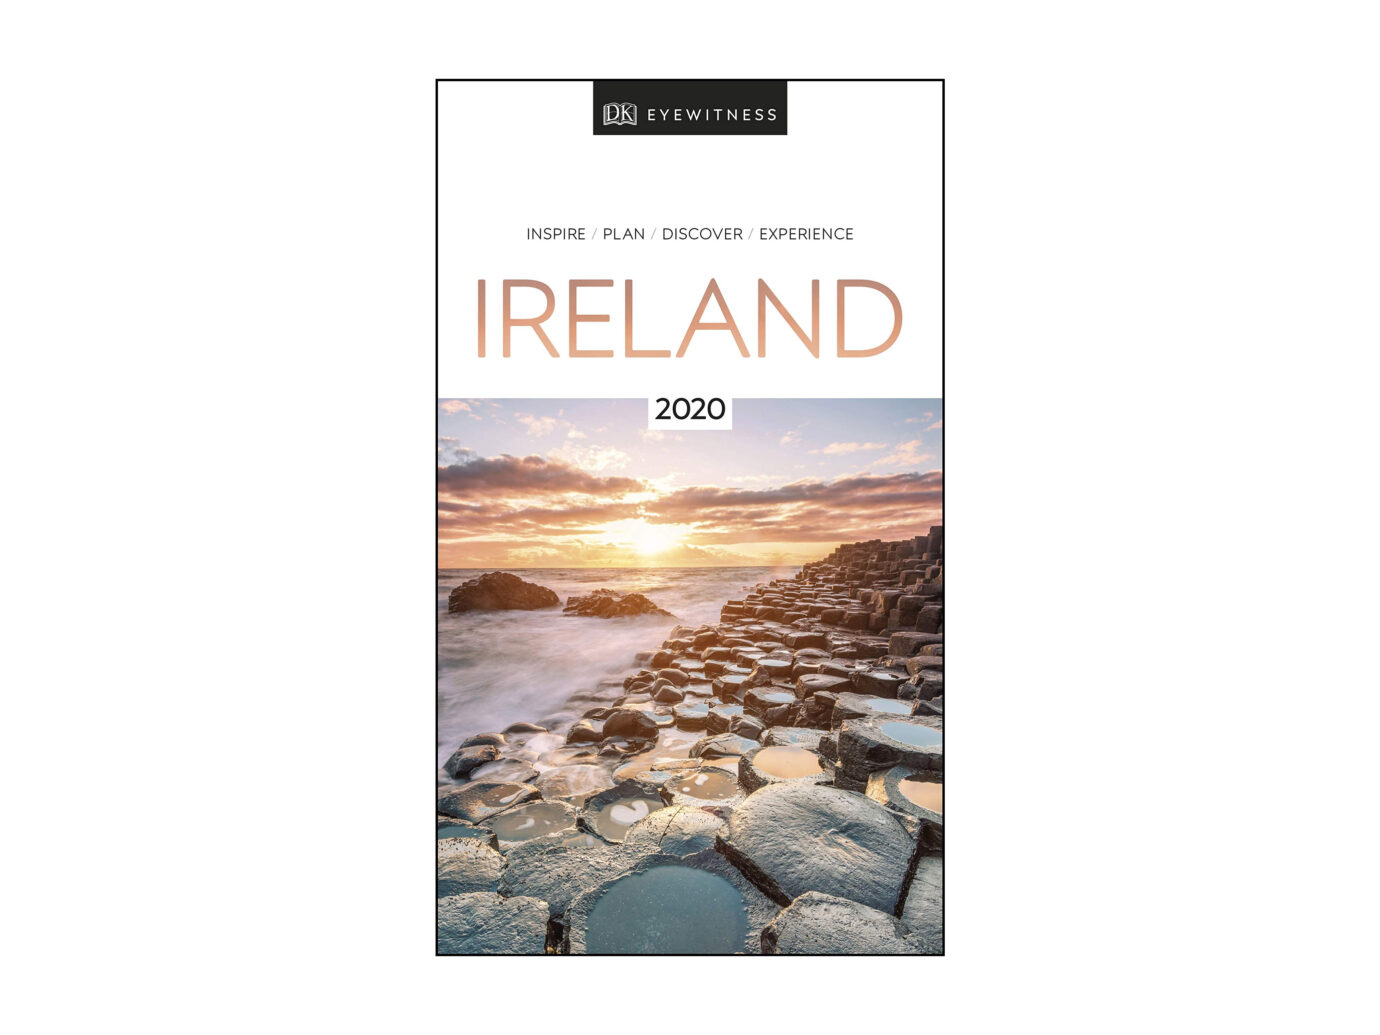 DK Eyewitness Travel Guide Ireland: 2020